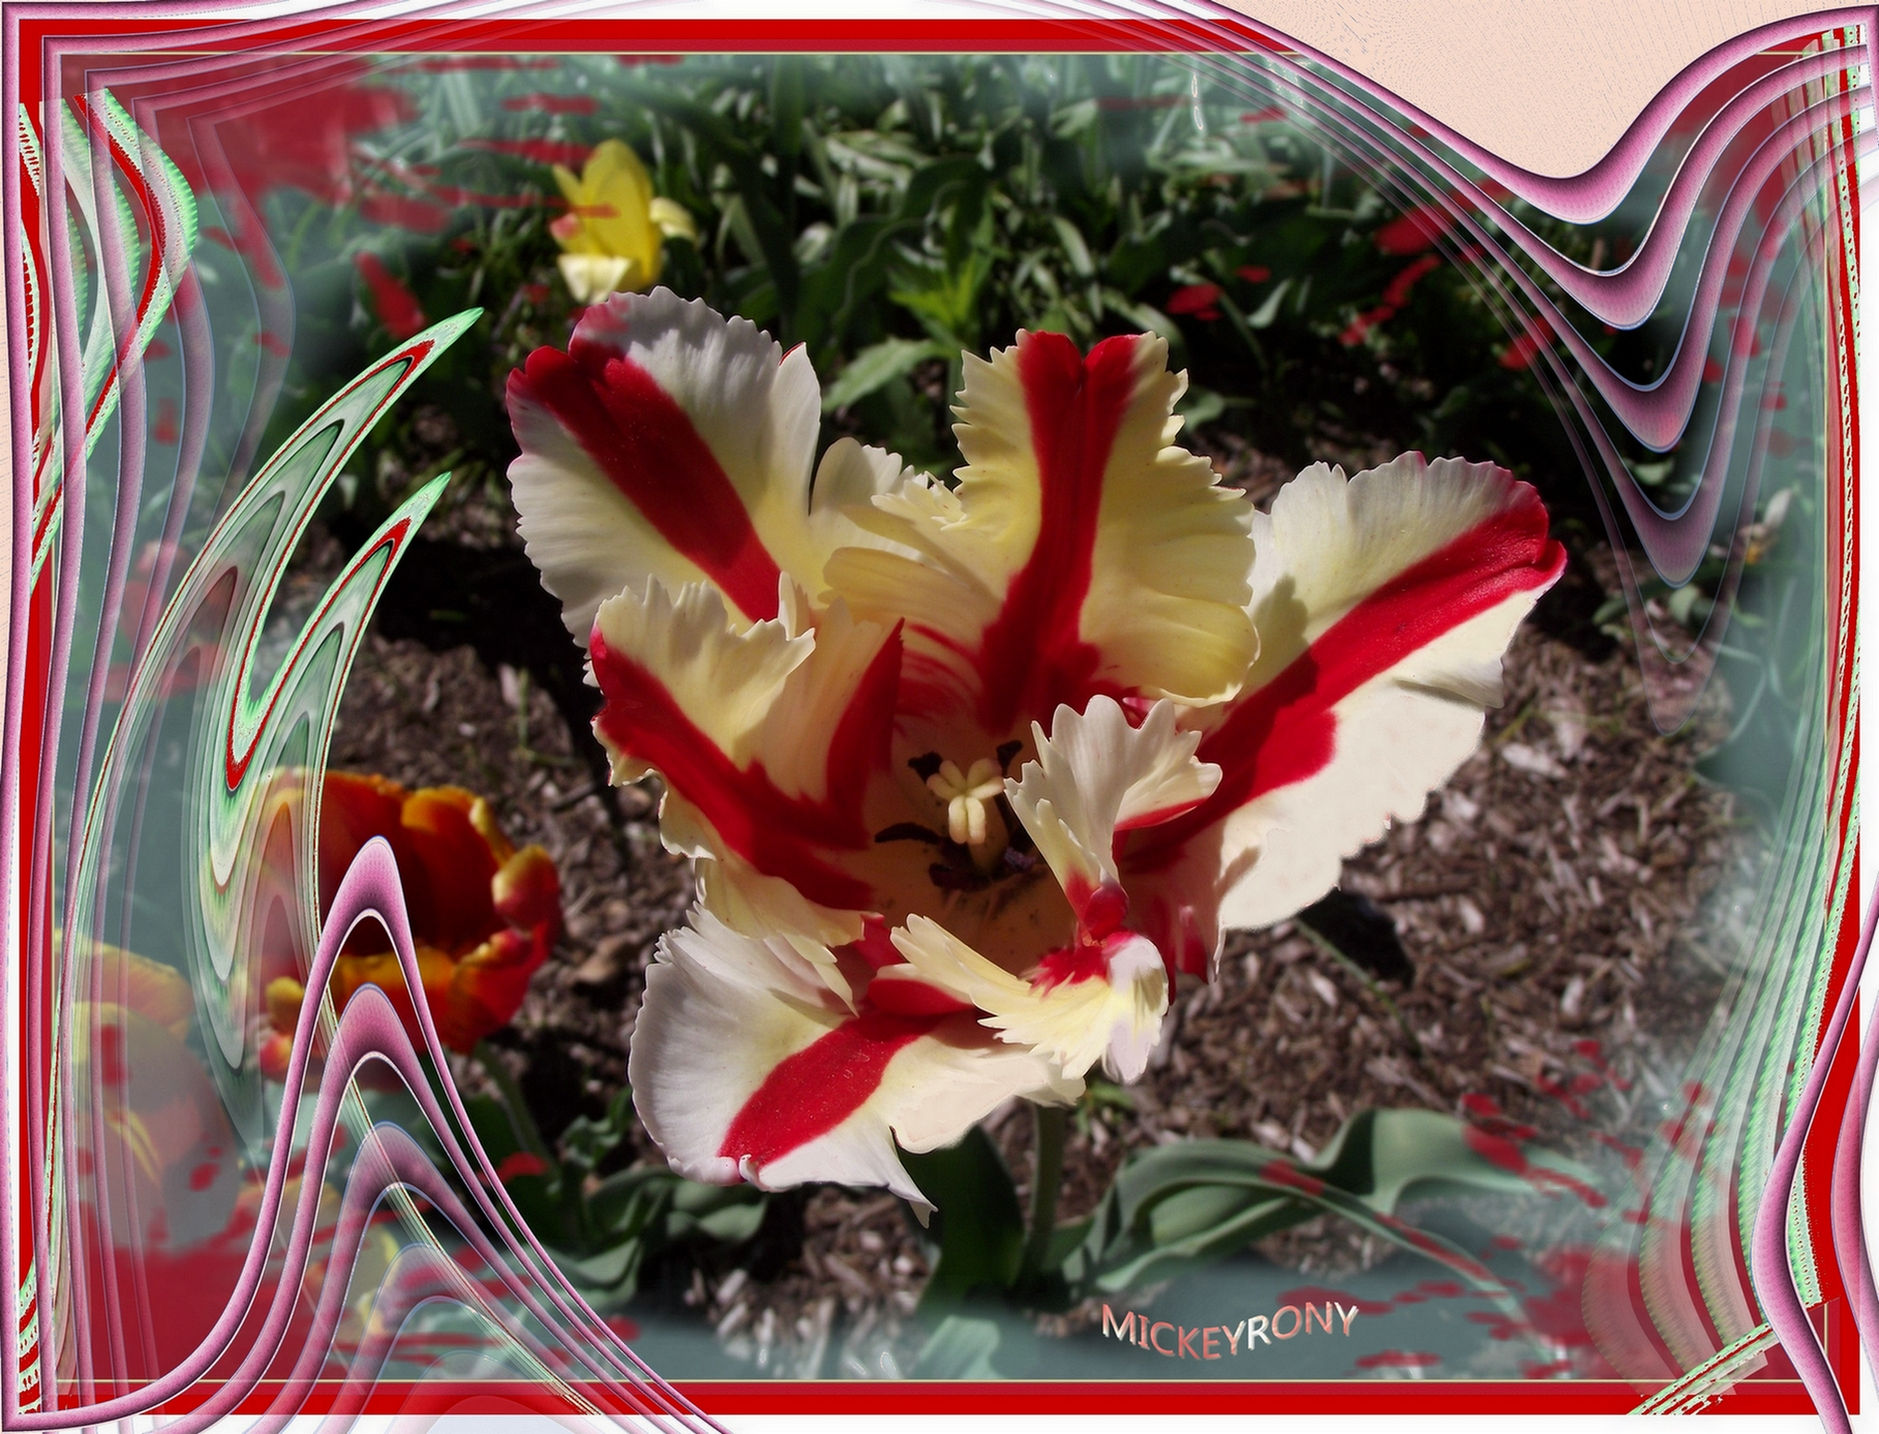 Missing you all my friends (tulipe)